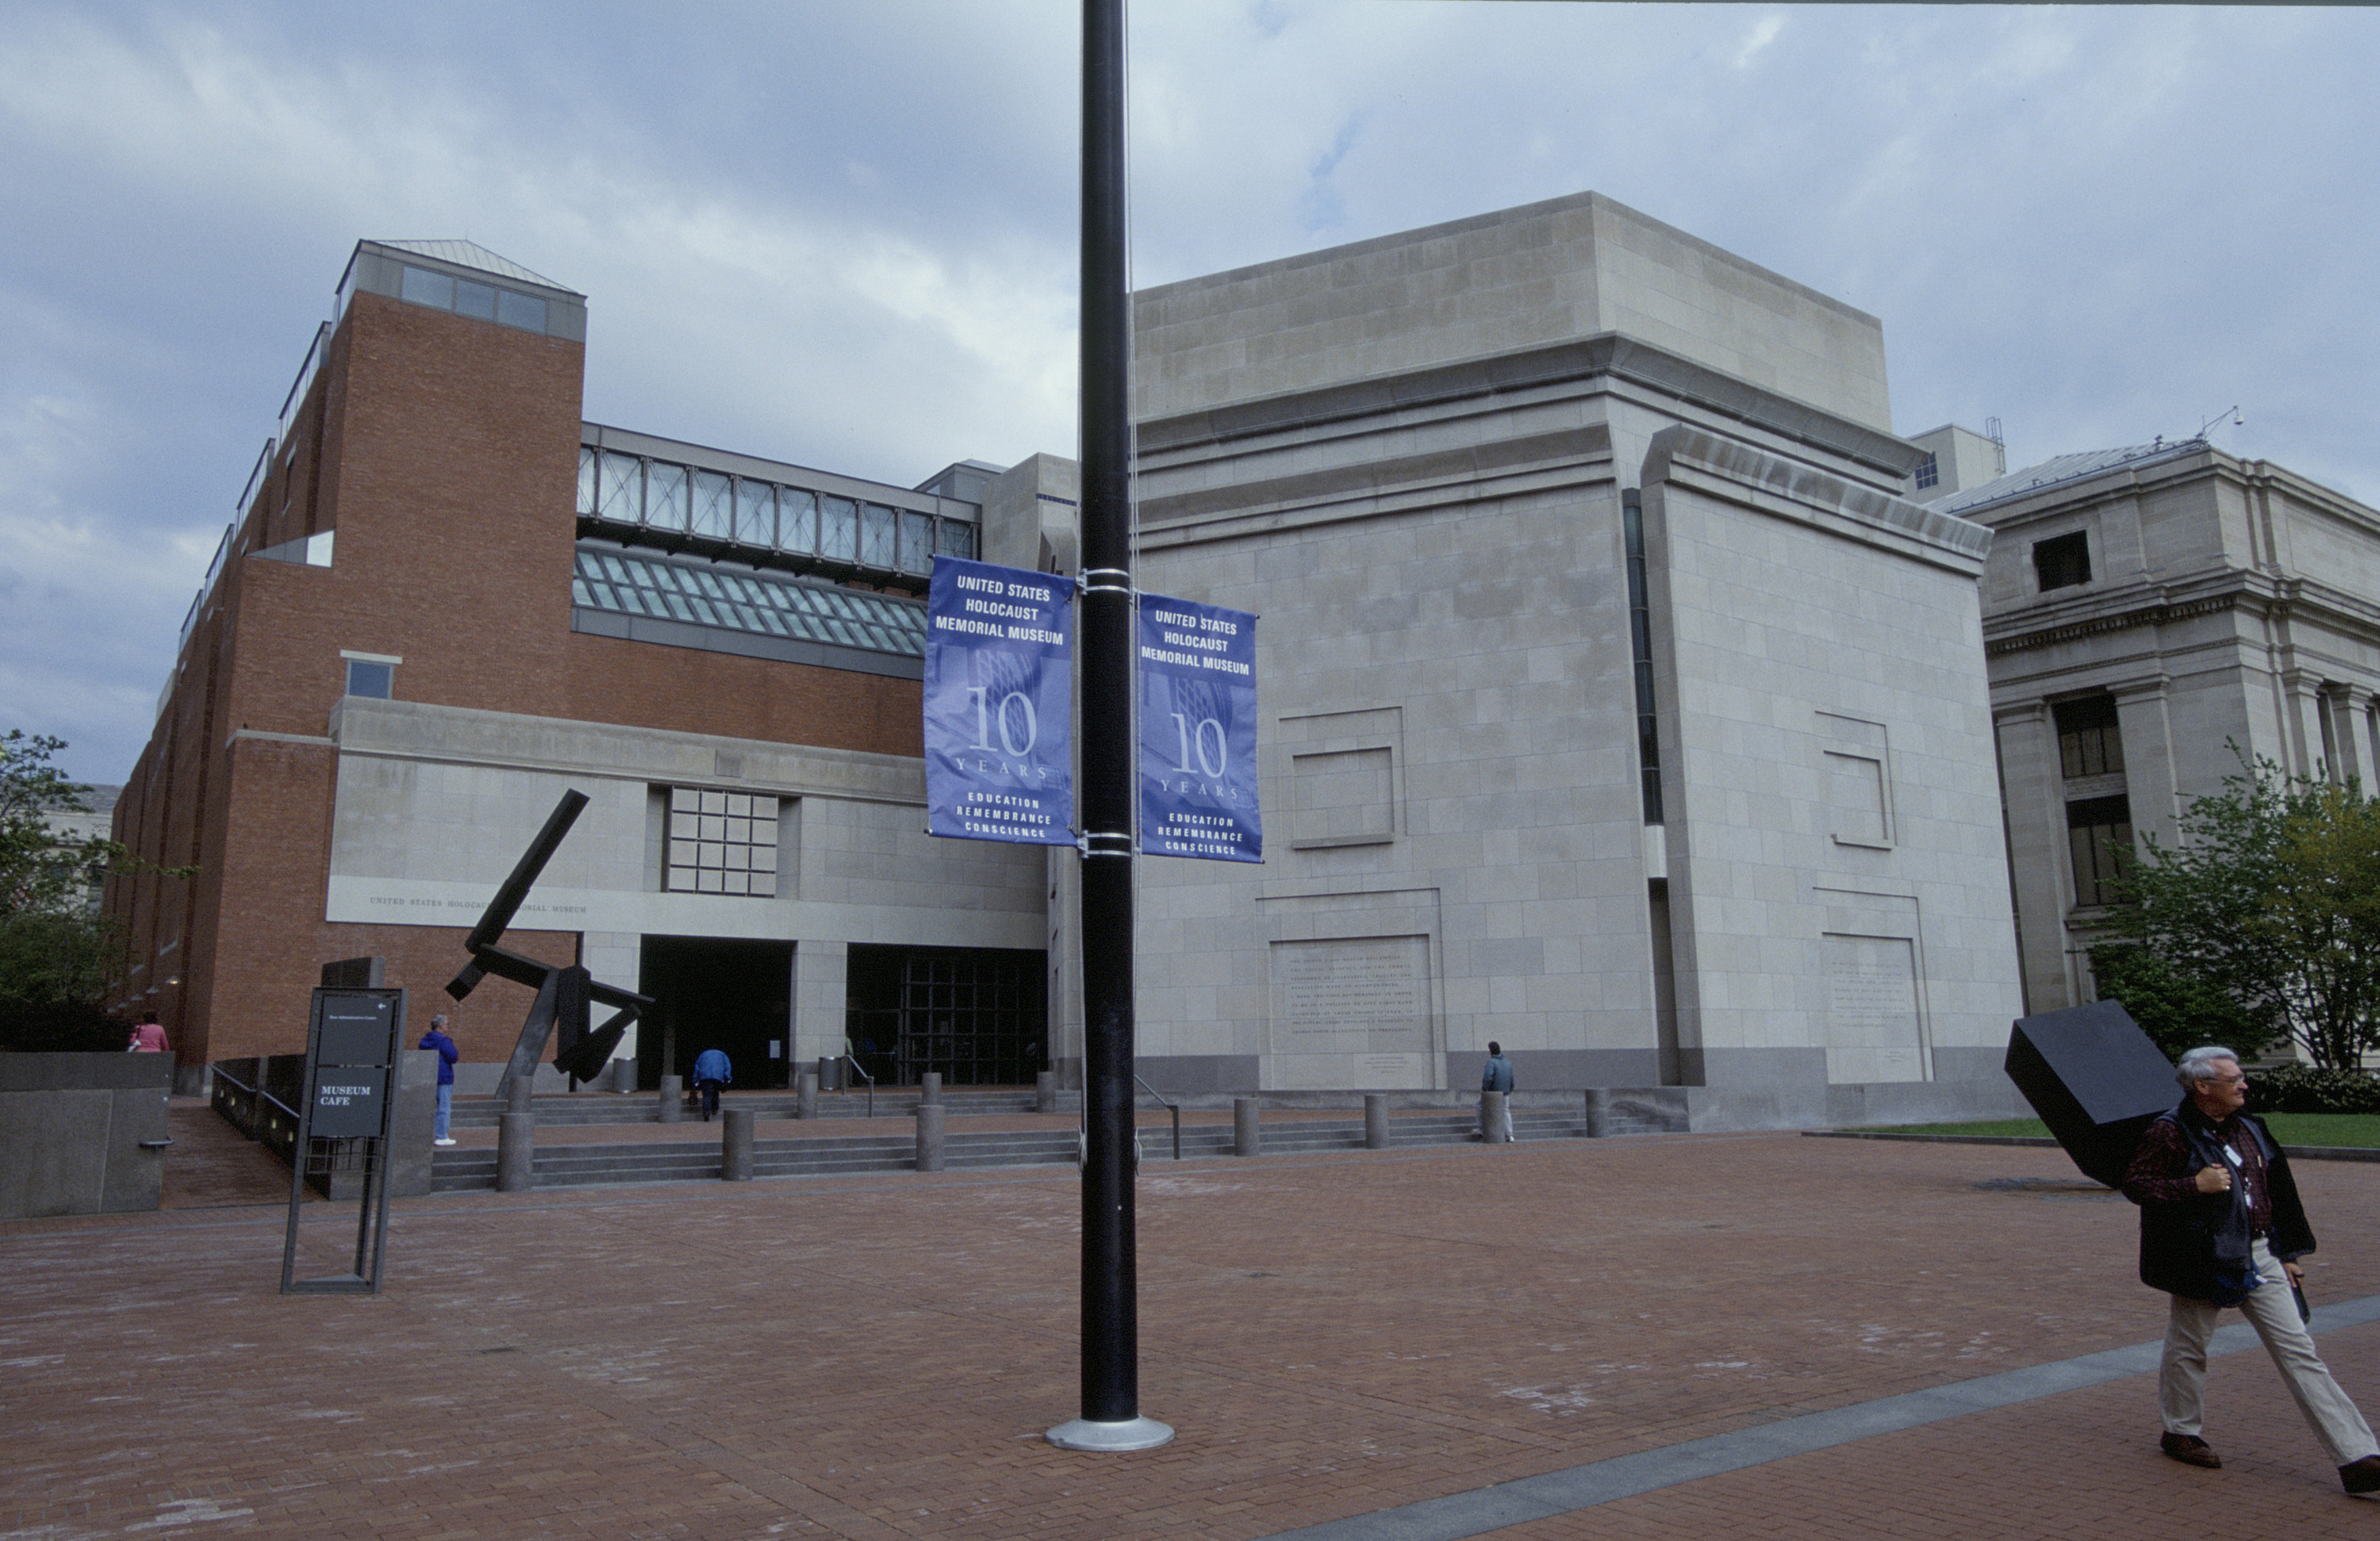 View of Eisenhower Plaza decorated with 10th anniversary banners on the flag pole at the United States Holocaust Memorial Museum on the day of its10th anniversary.